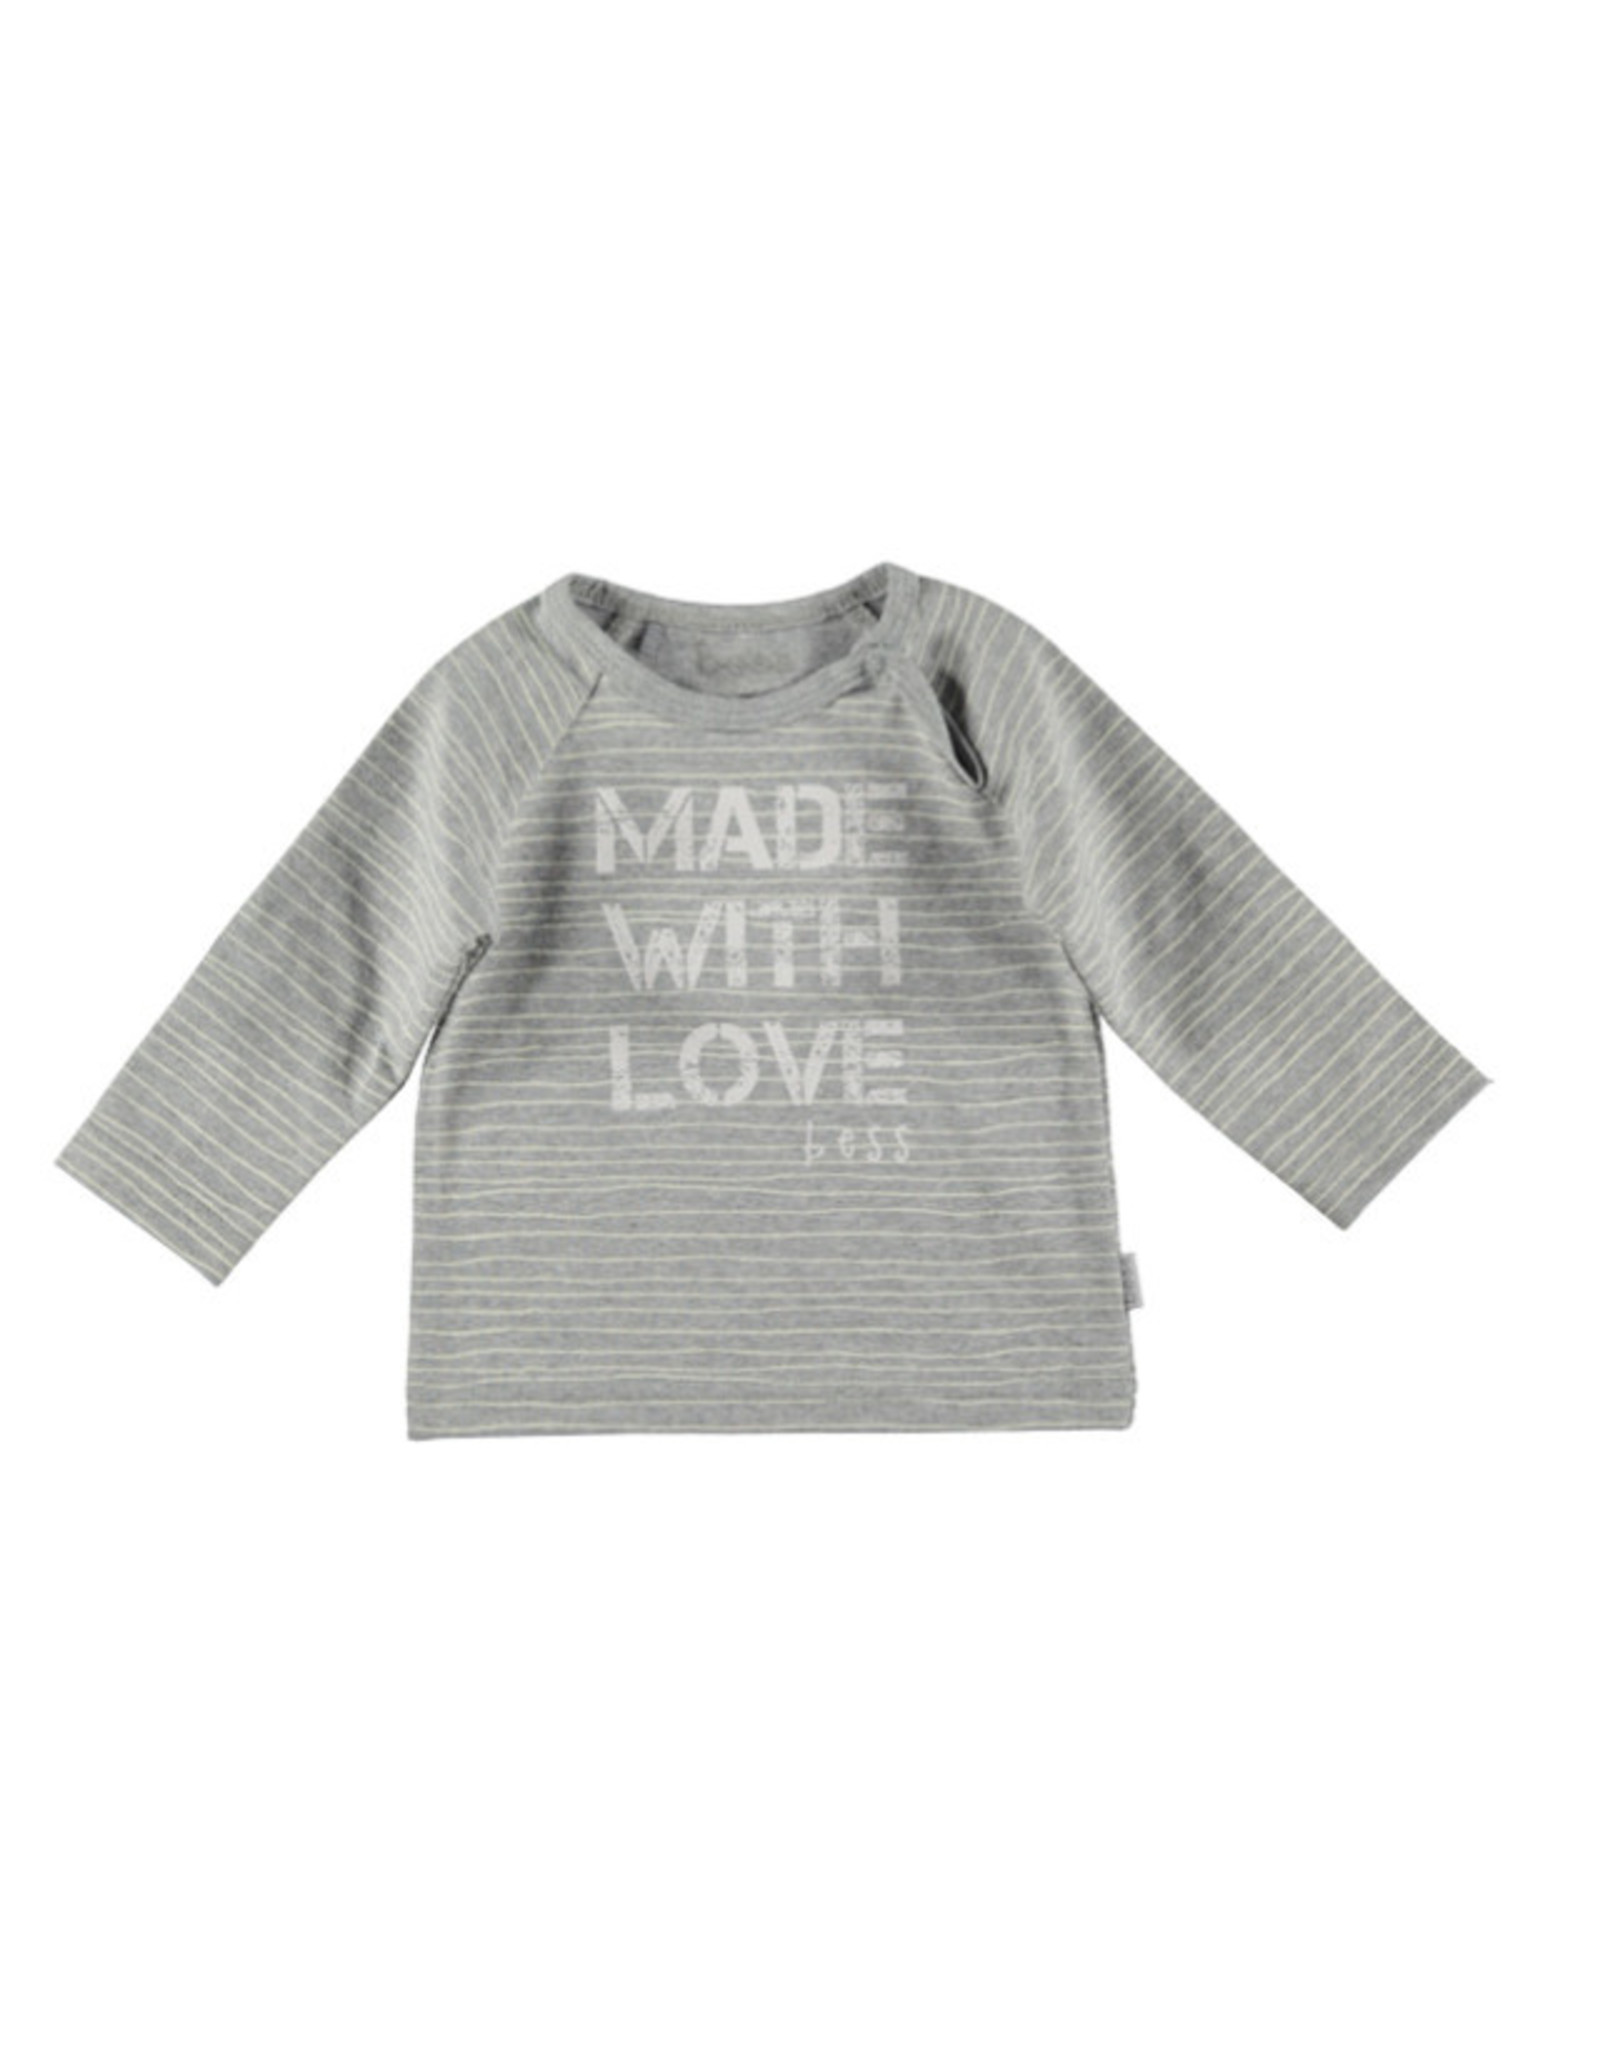 BESS Bess longsleeve Made with love pinstripe white